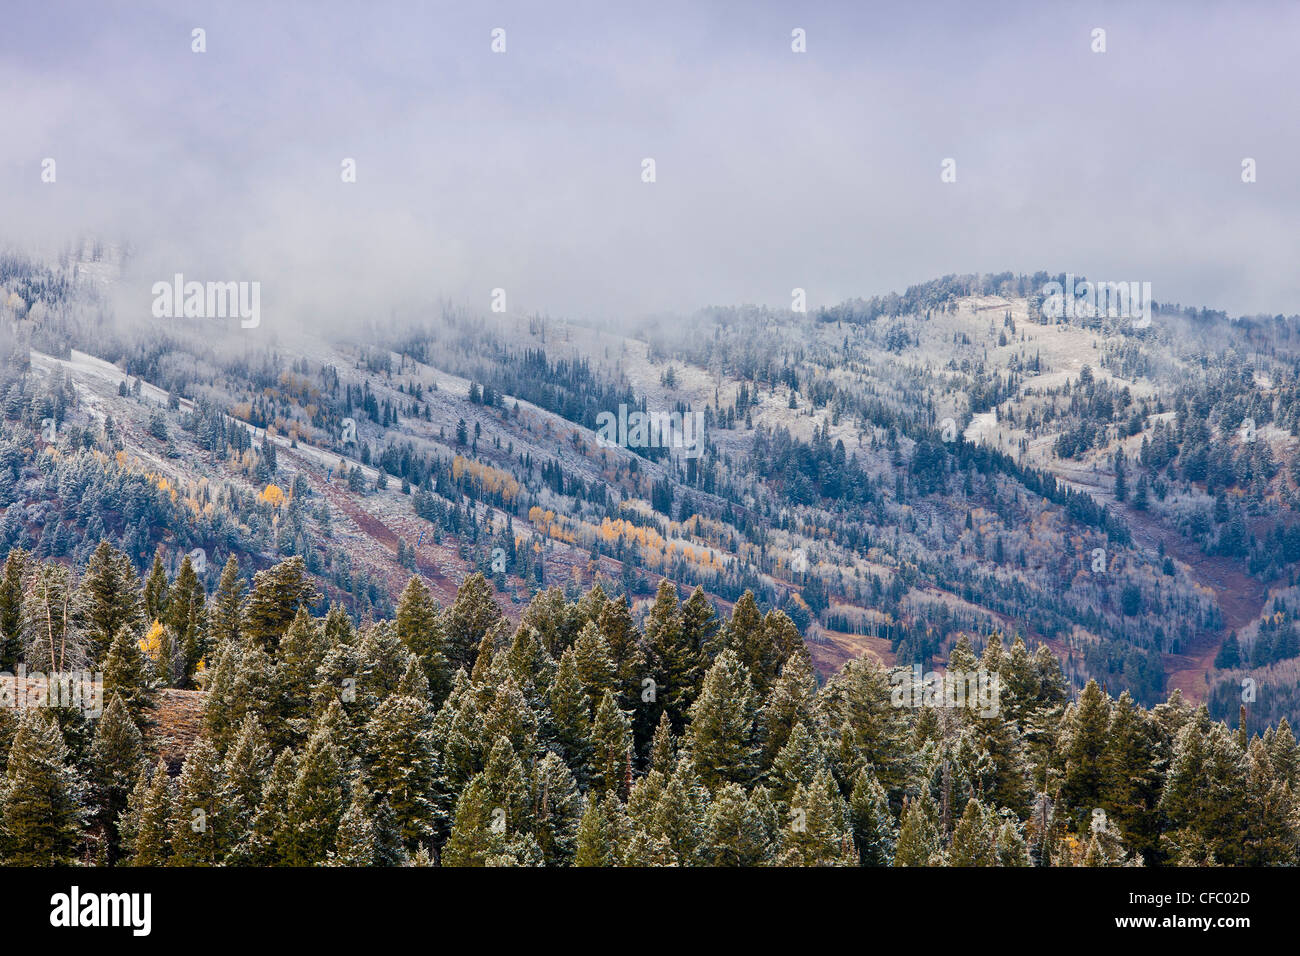 USA, United States, Amérique, Wyoming, froid, première neige, brume, brouillard, neige, sapins, neige, Photo Stock